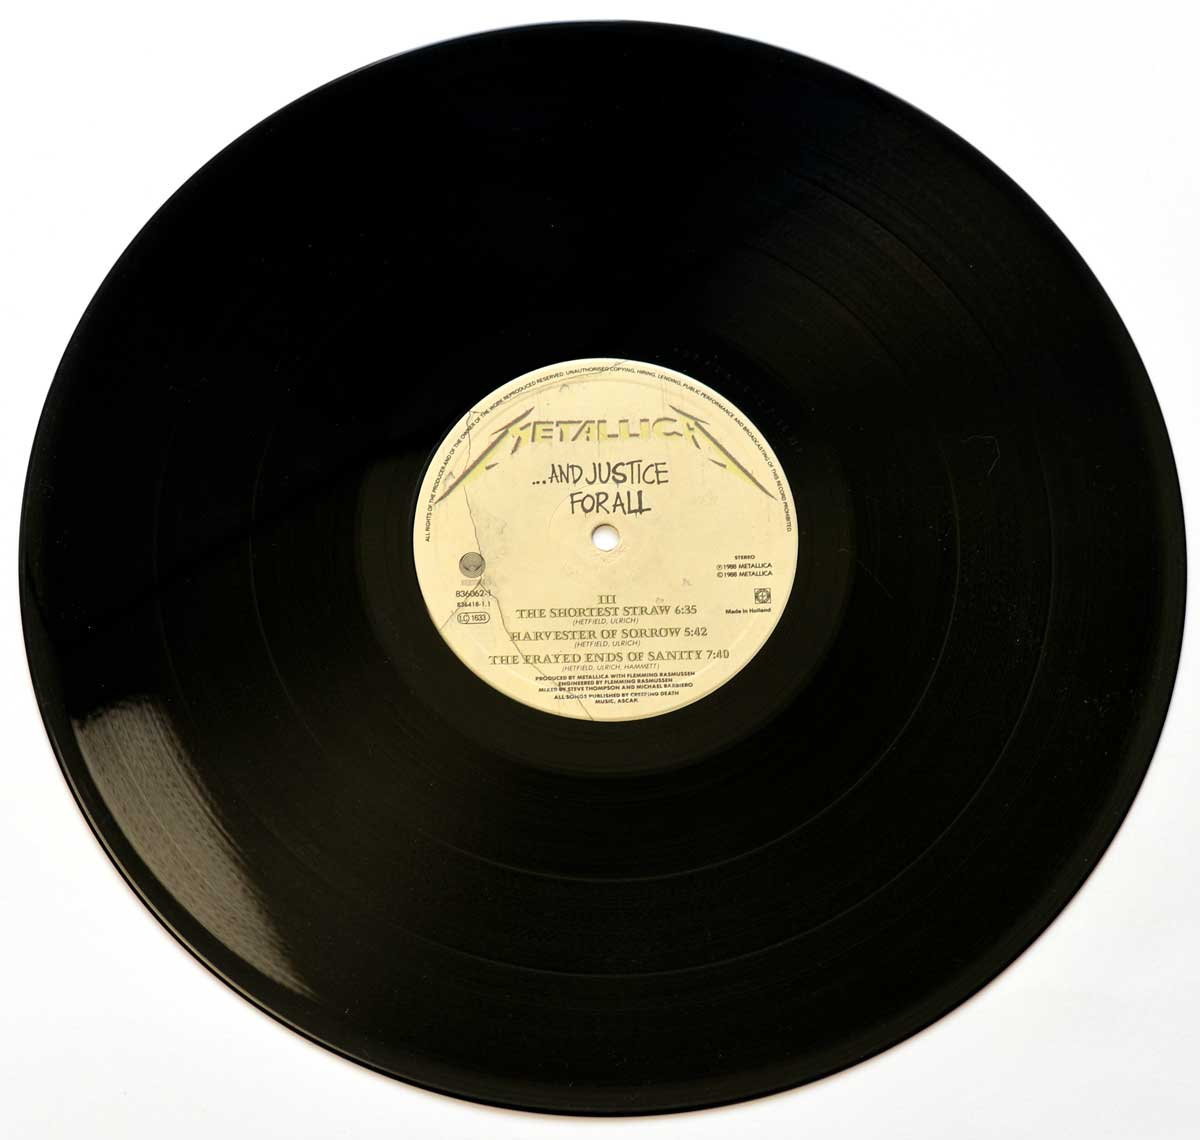 "Photo of ""METALLICA And Justice For All"" 12"" LP Record - Side Three:"